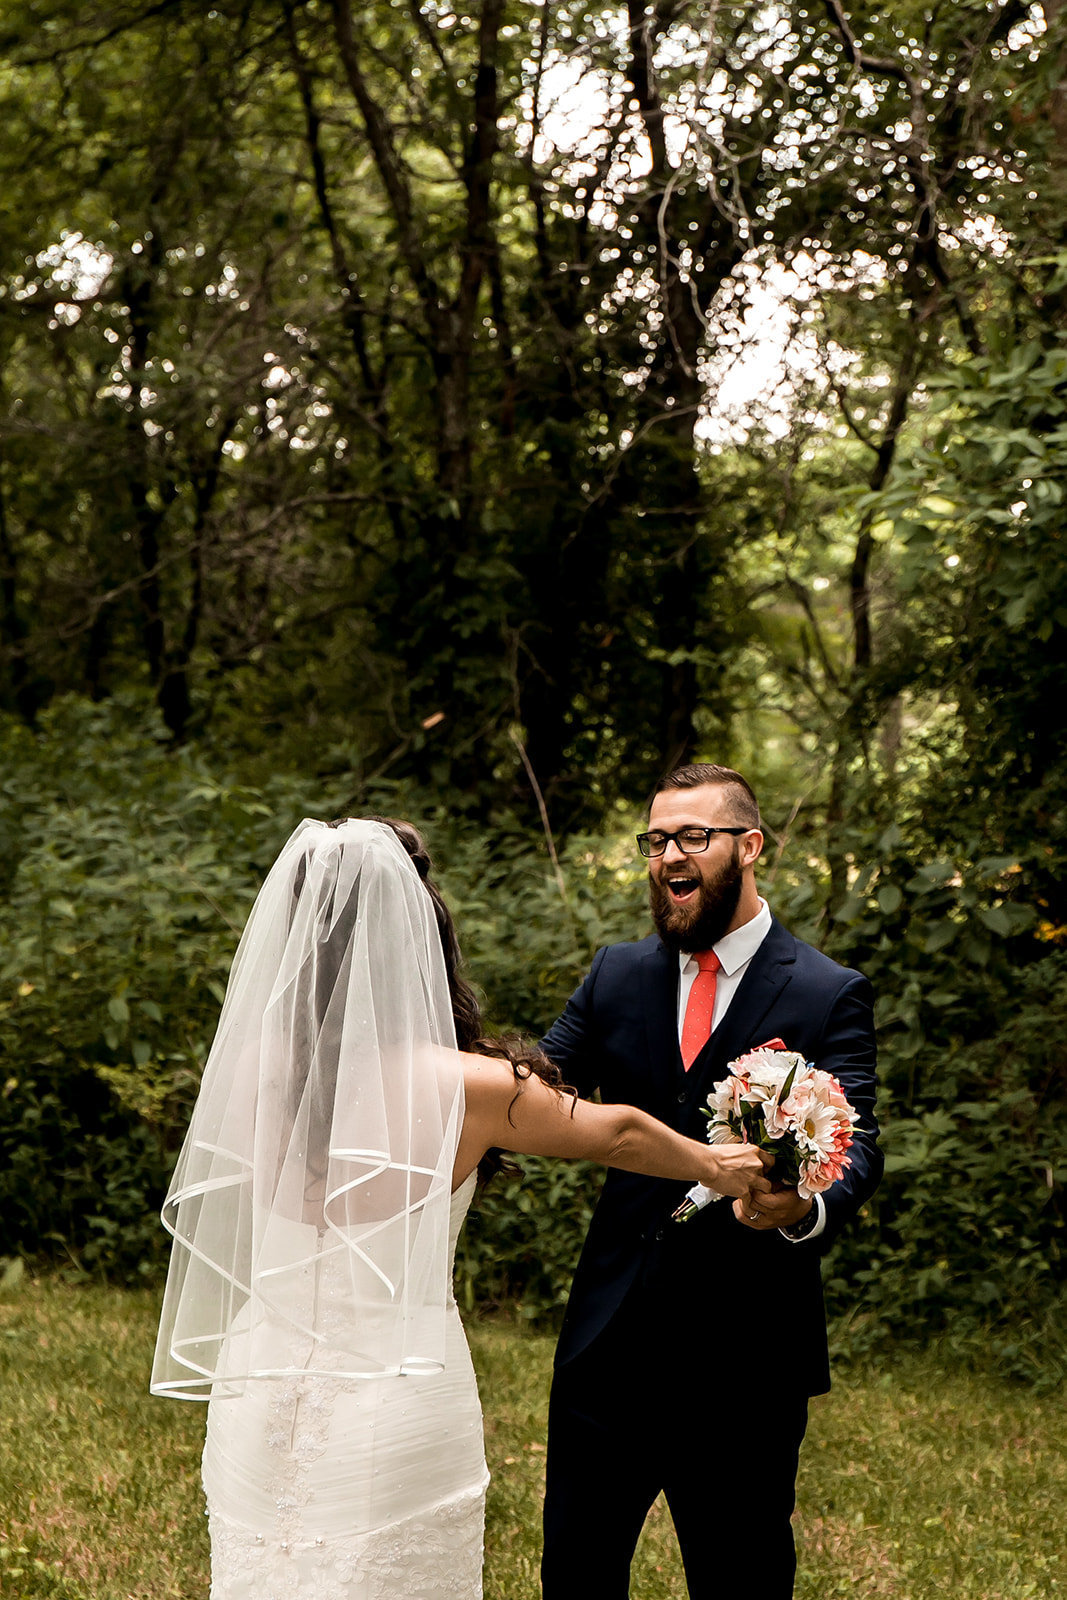 Des Moines Iowa wedding couple first look.